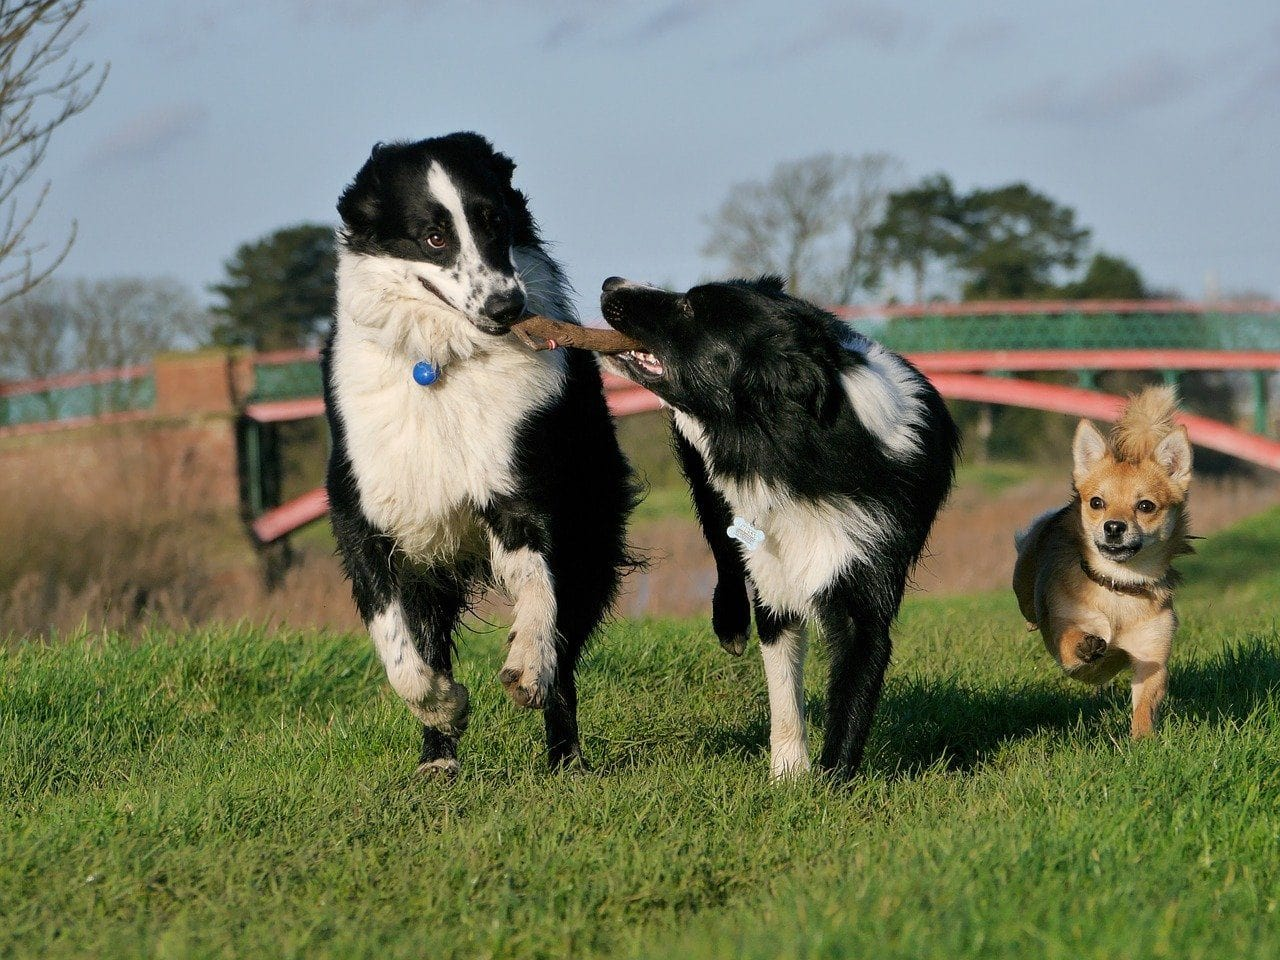 Happy dogs playing together